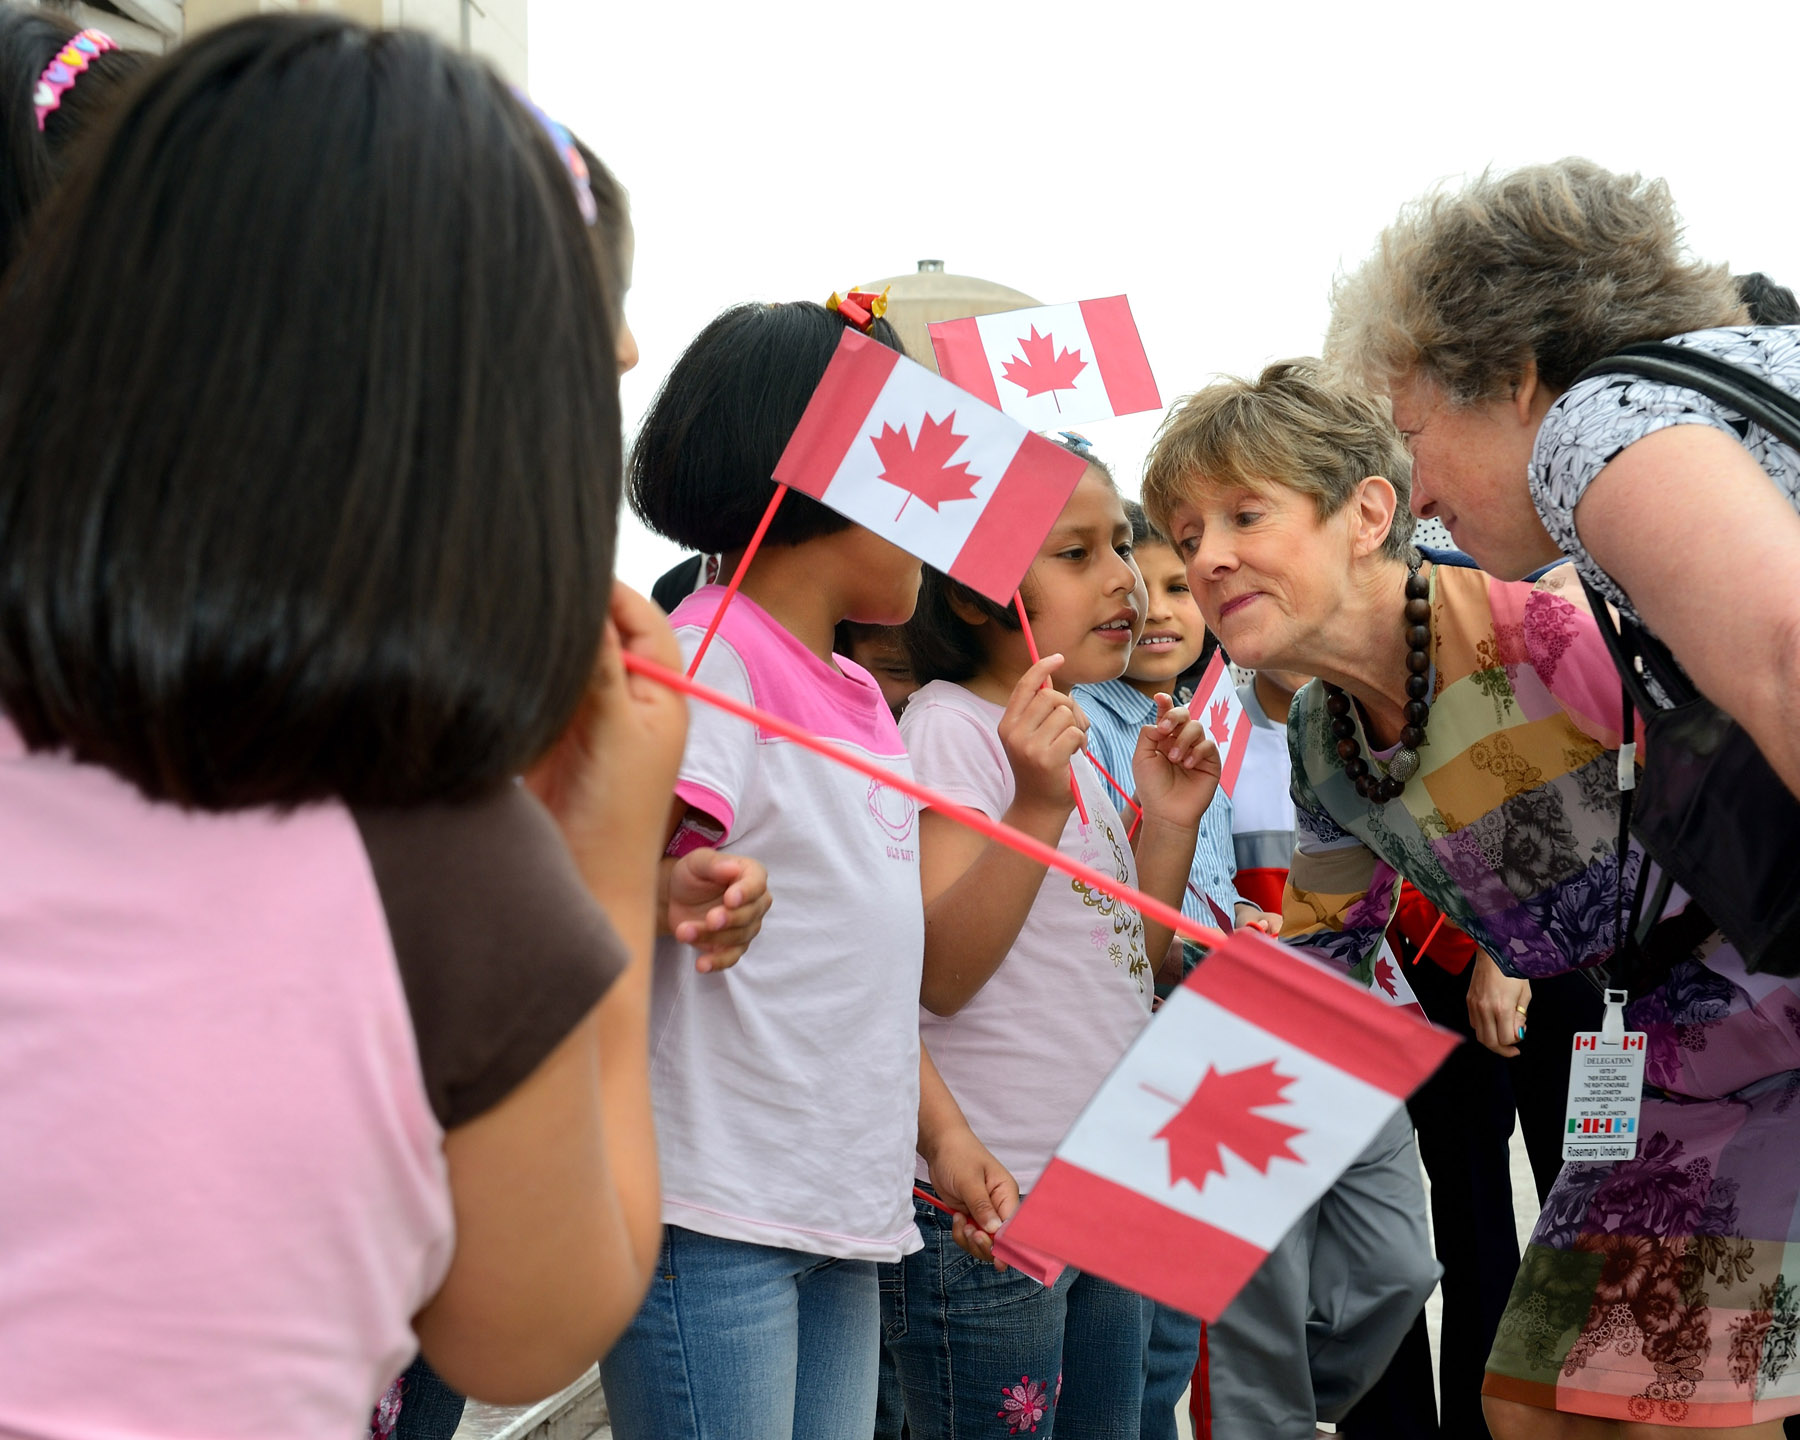 Her Excellency Mrs. Sharon Johnston visited the orphanage Puericultorio Perez Aranibar, the biggest one in Peru. Upon her arrival, she was greeted by smiling children waiving Canadian flags.